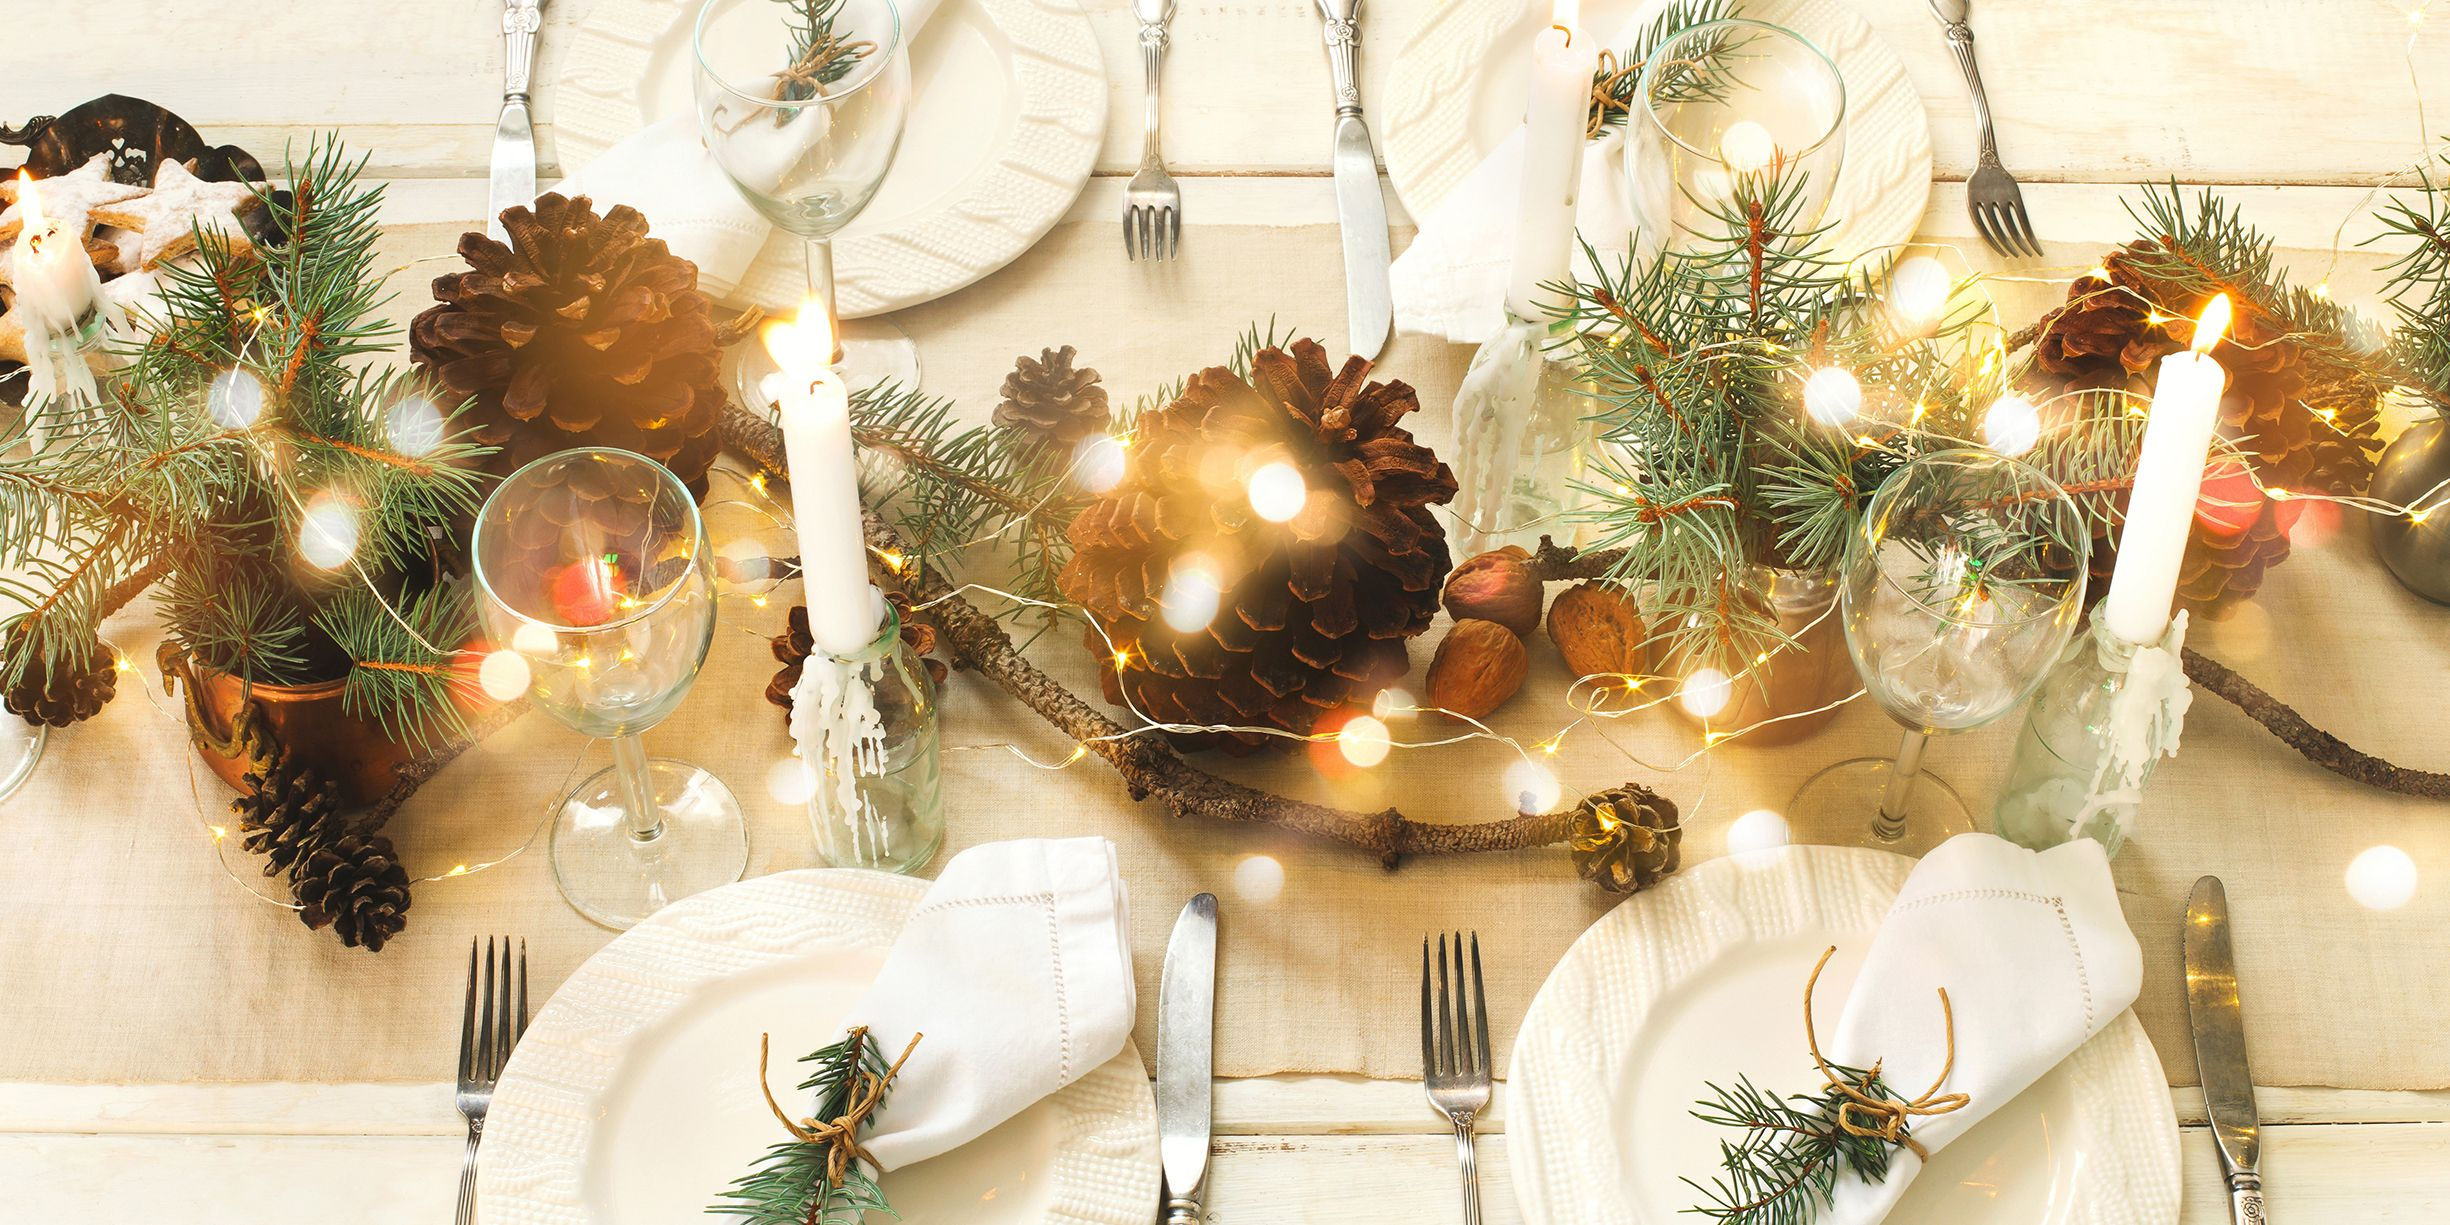 These Christmas Table & Centerpiece Ideas Will Make Your Holiday Meal Even More Special